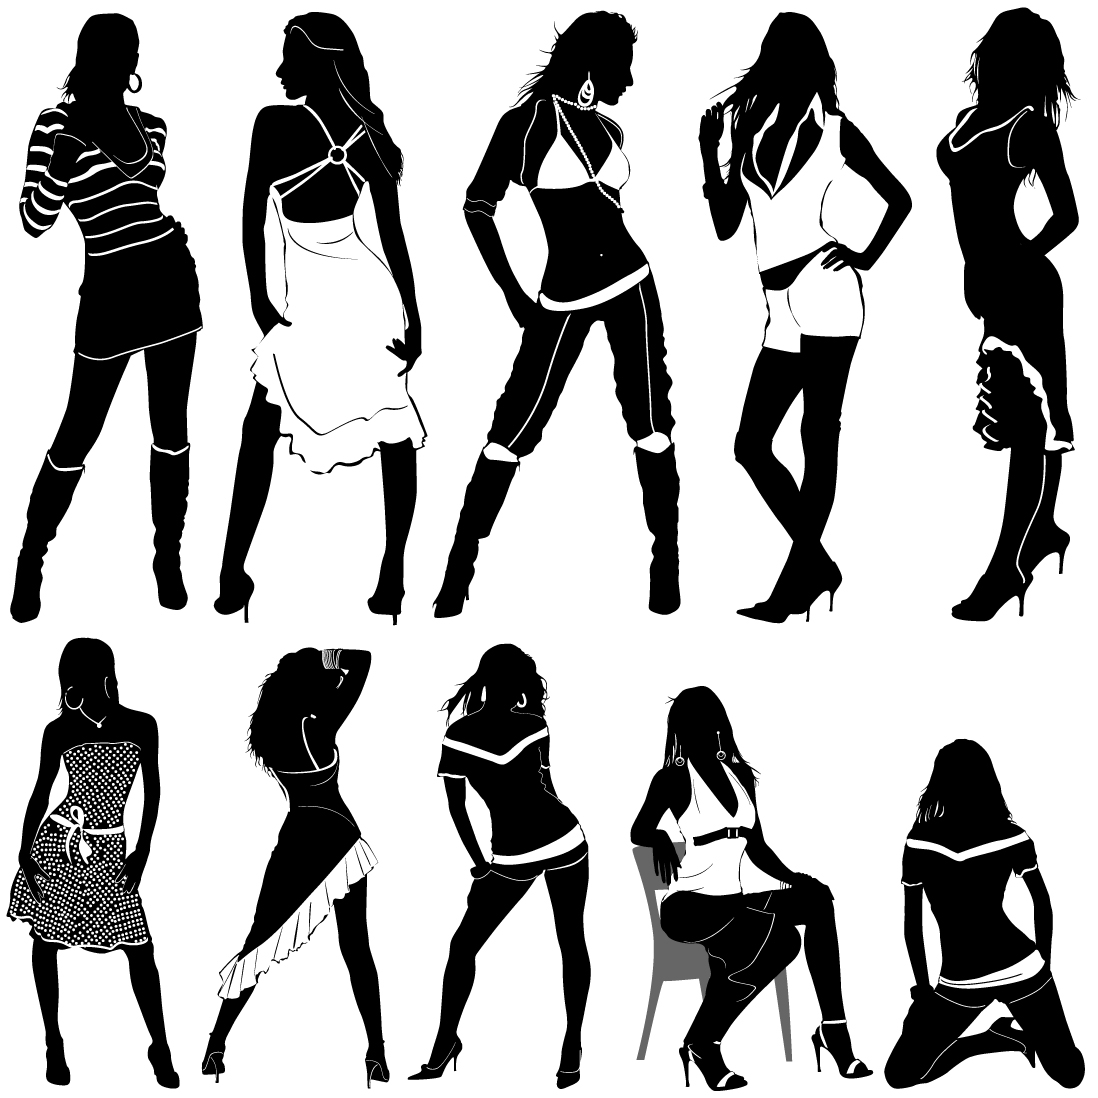 1098x1098 People Clip Art Black And White